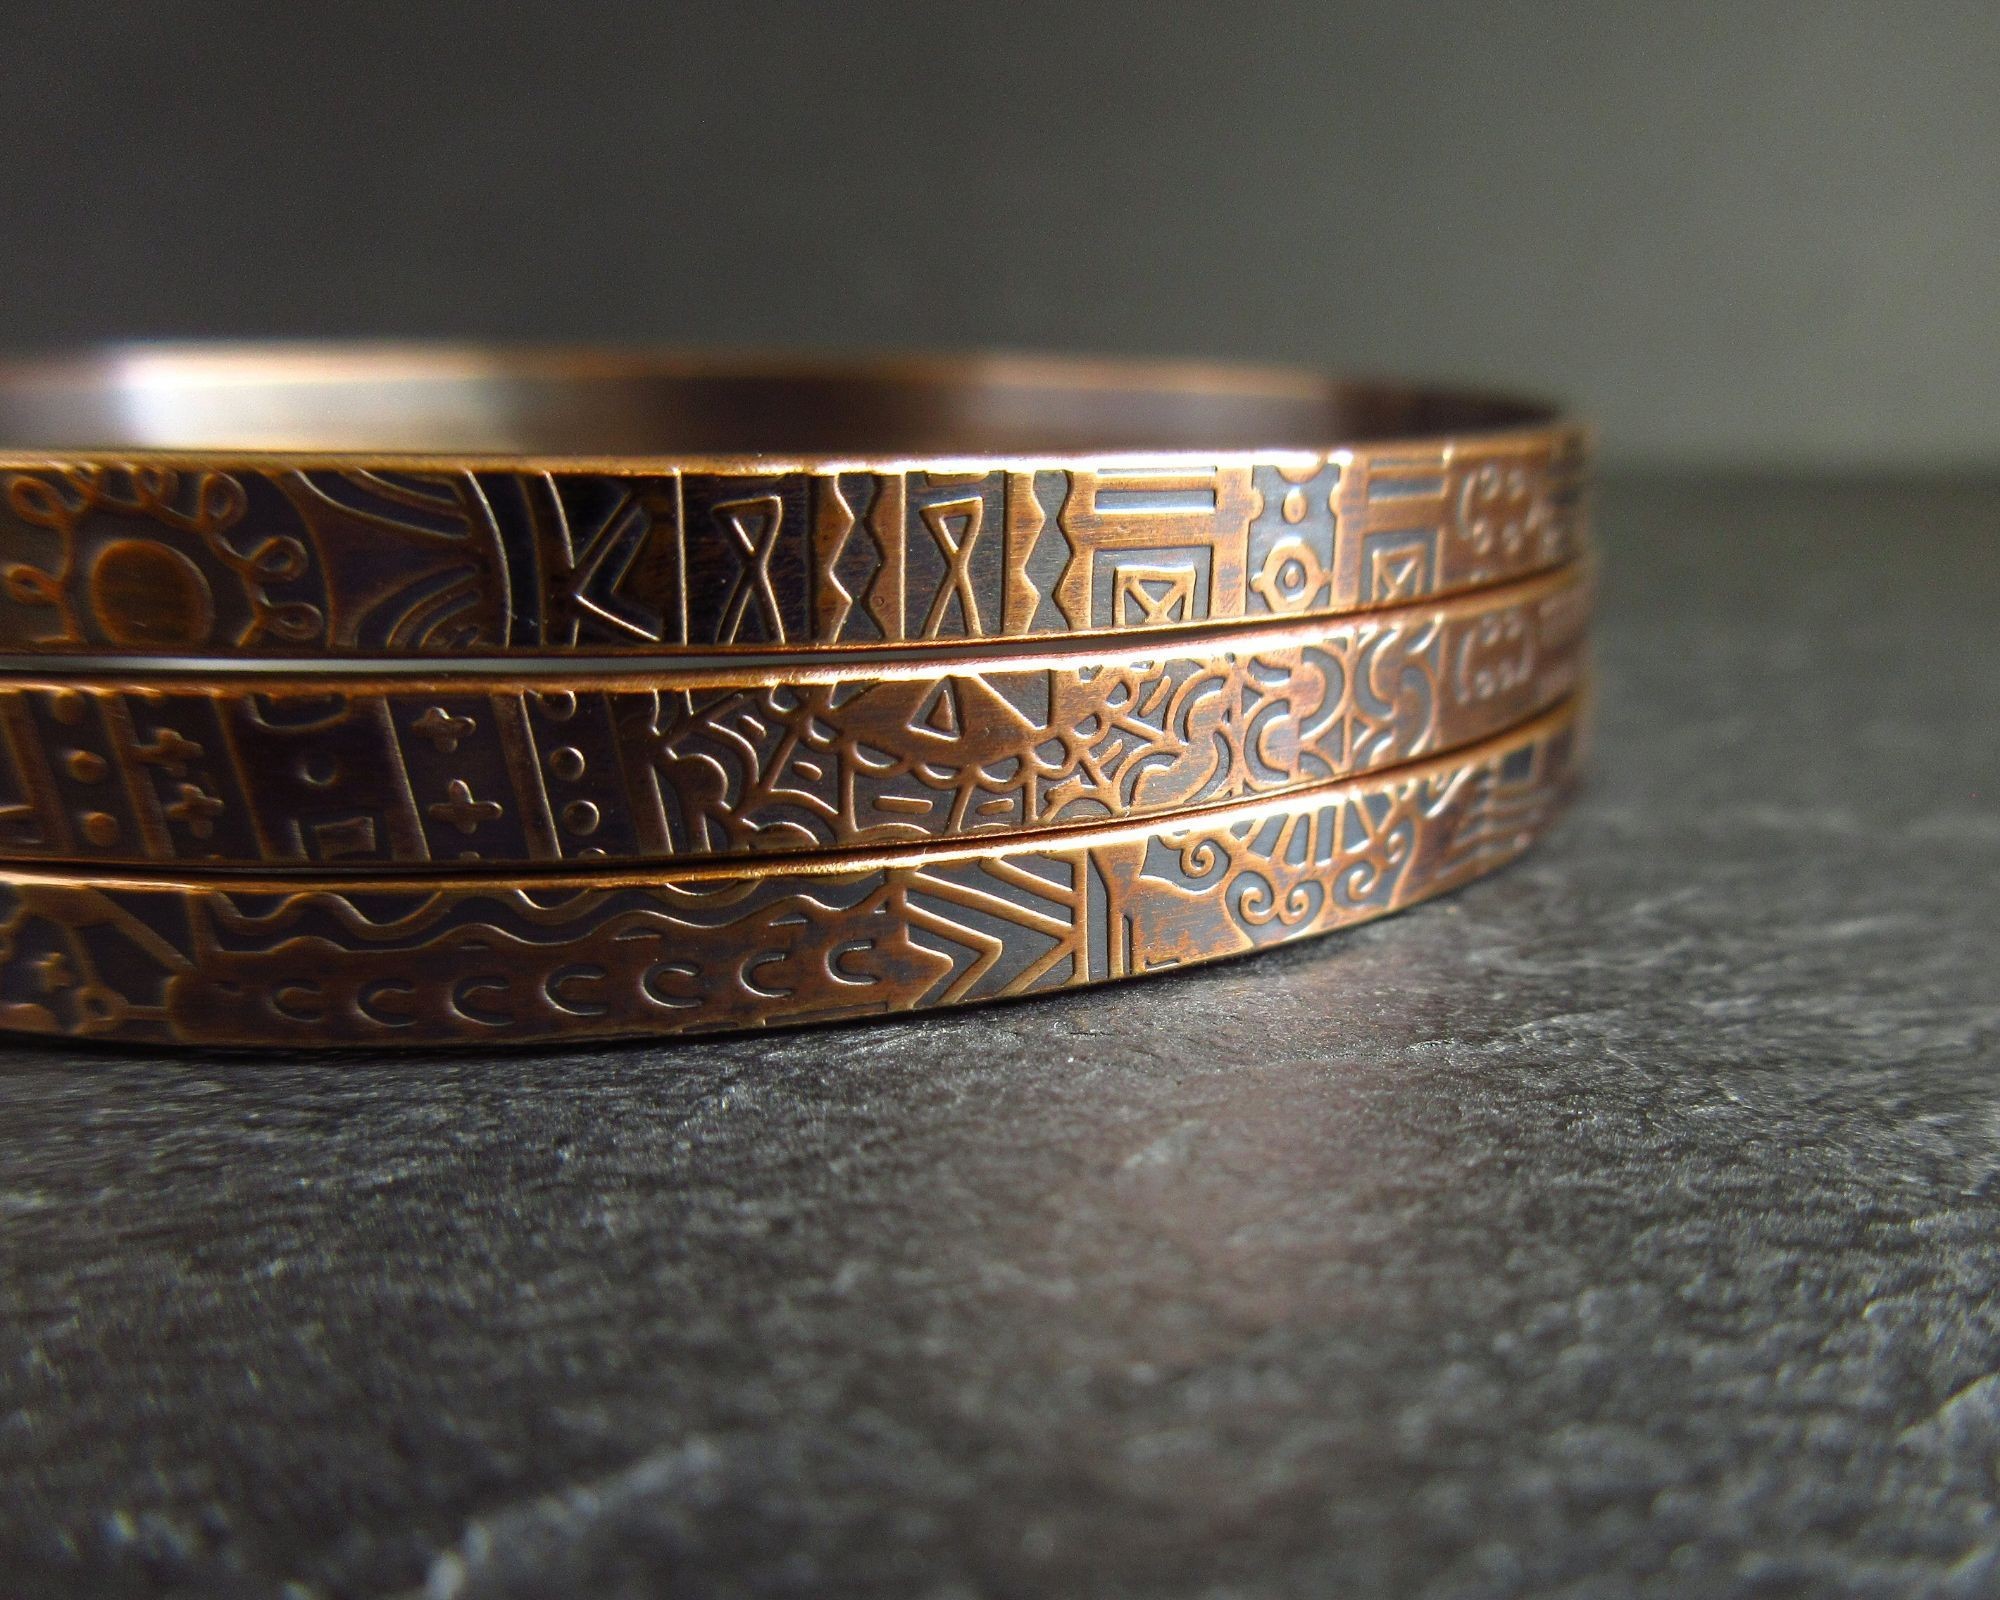 Patterned bronze bangles